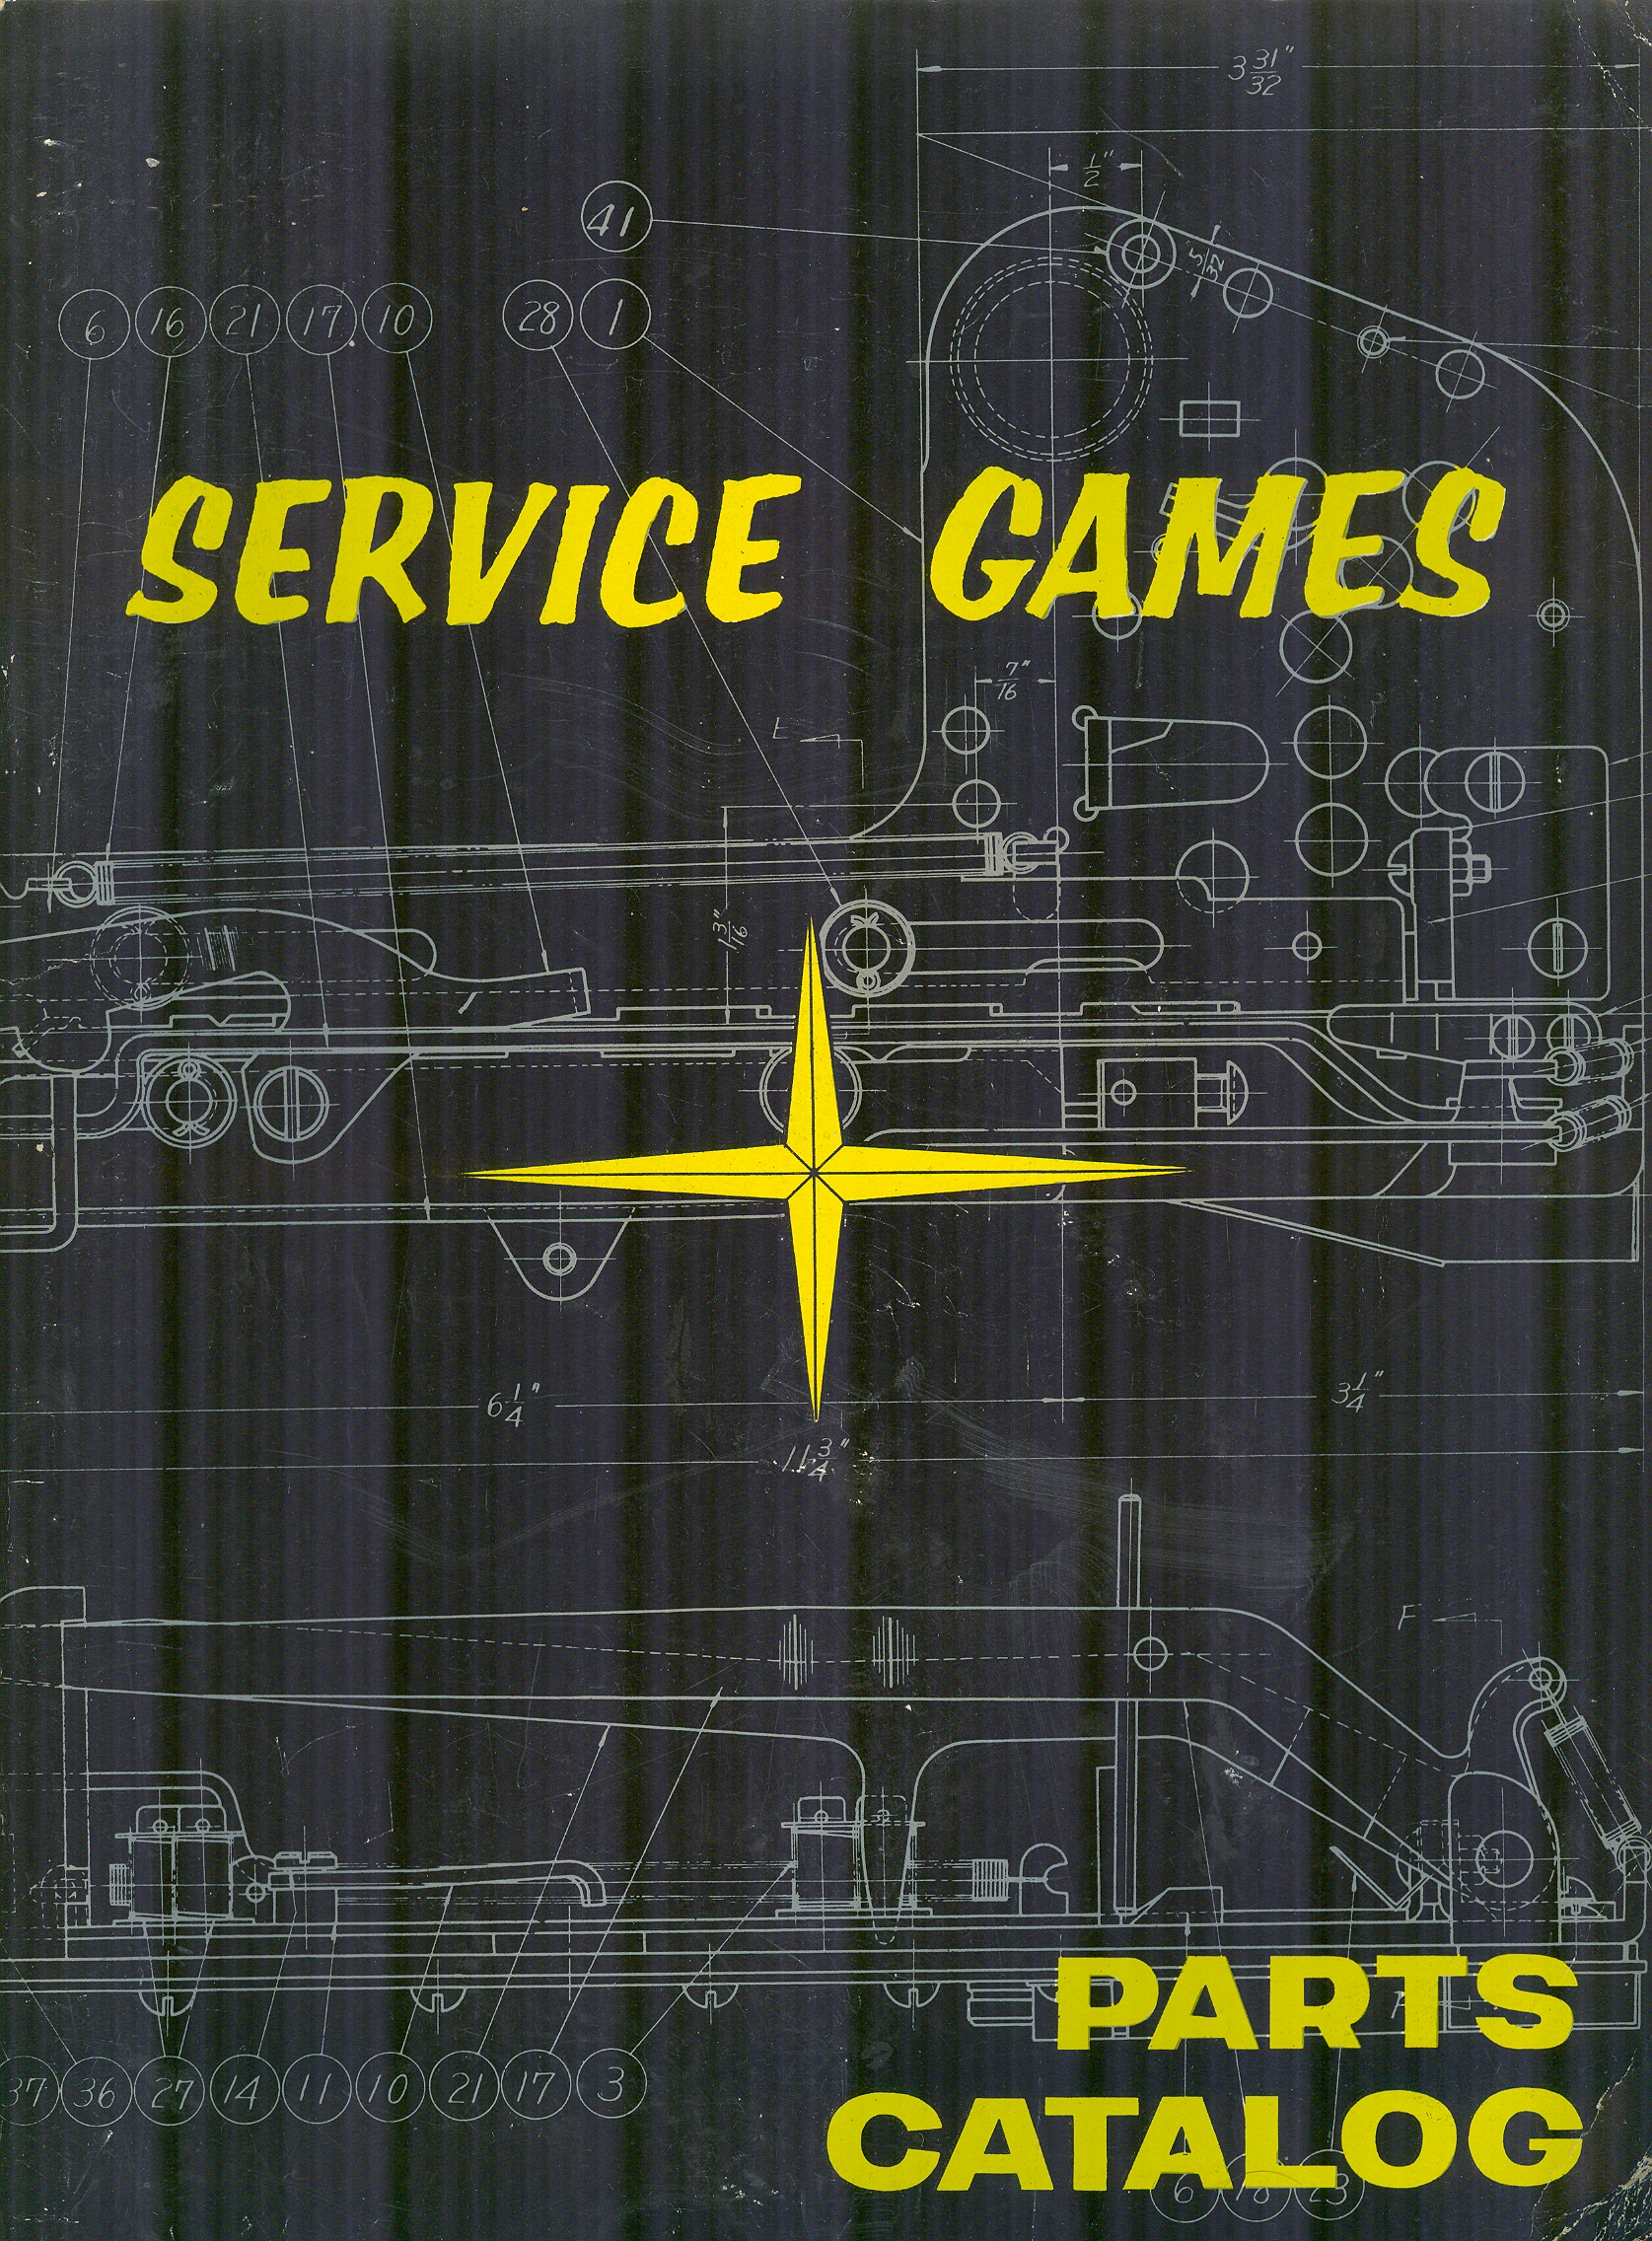 Service Games (Mills Parts Catalogue) -1.jpg